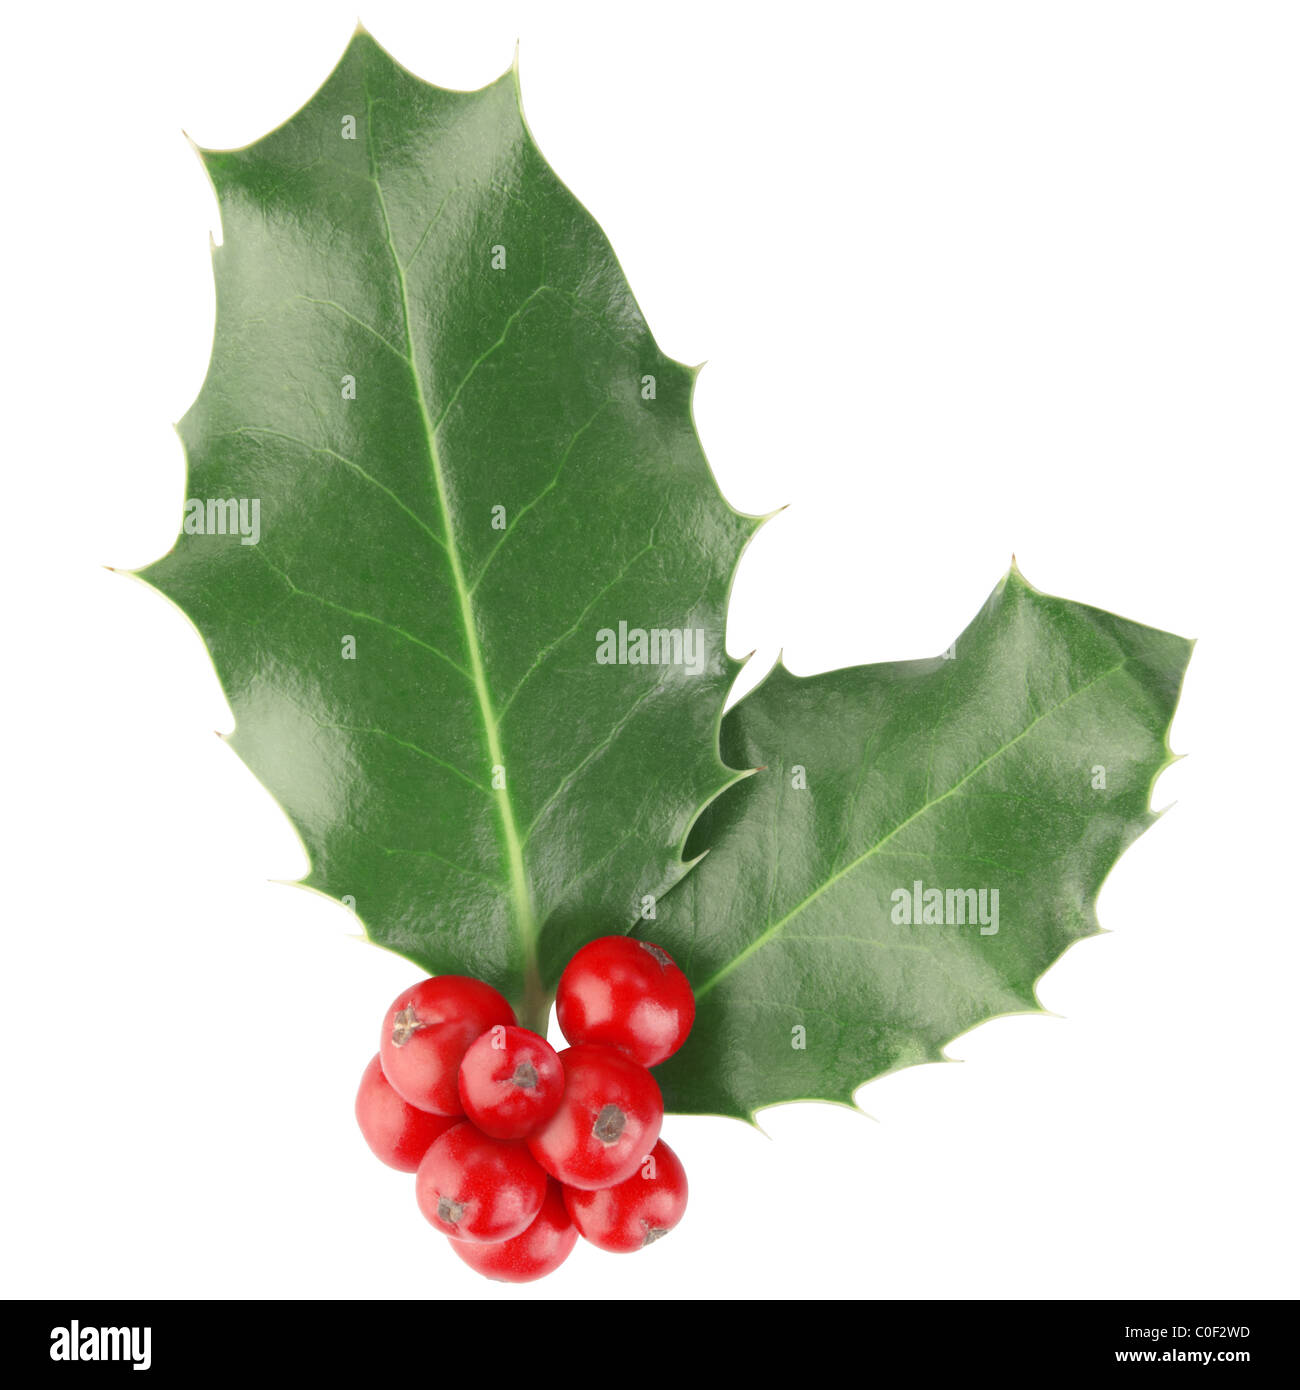 Holly isolated on white - Stock Image